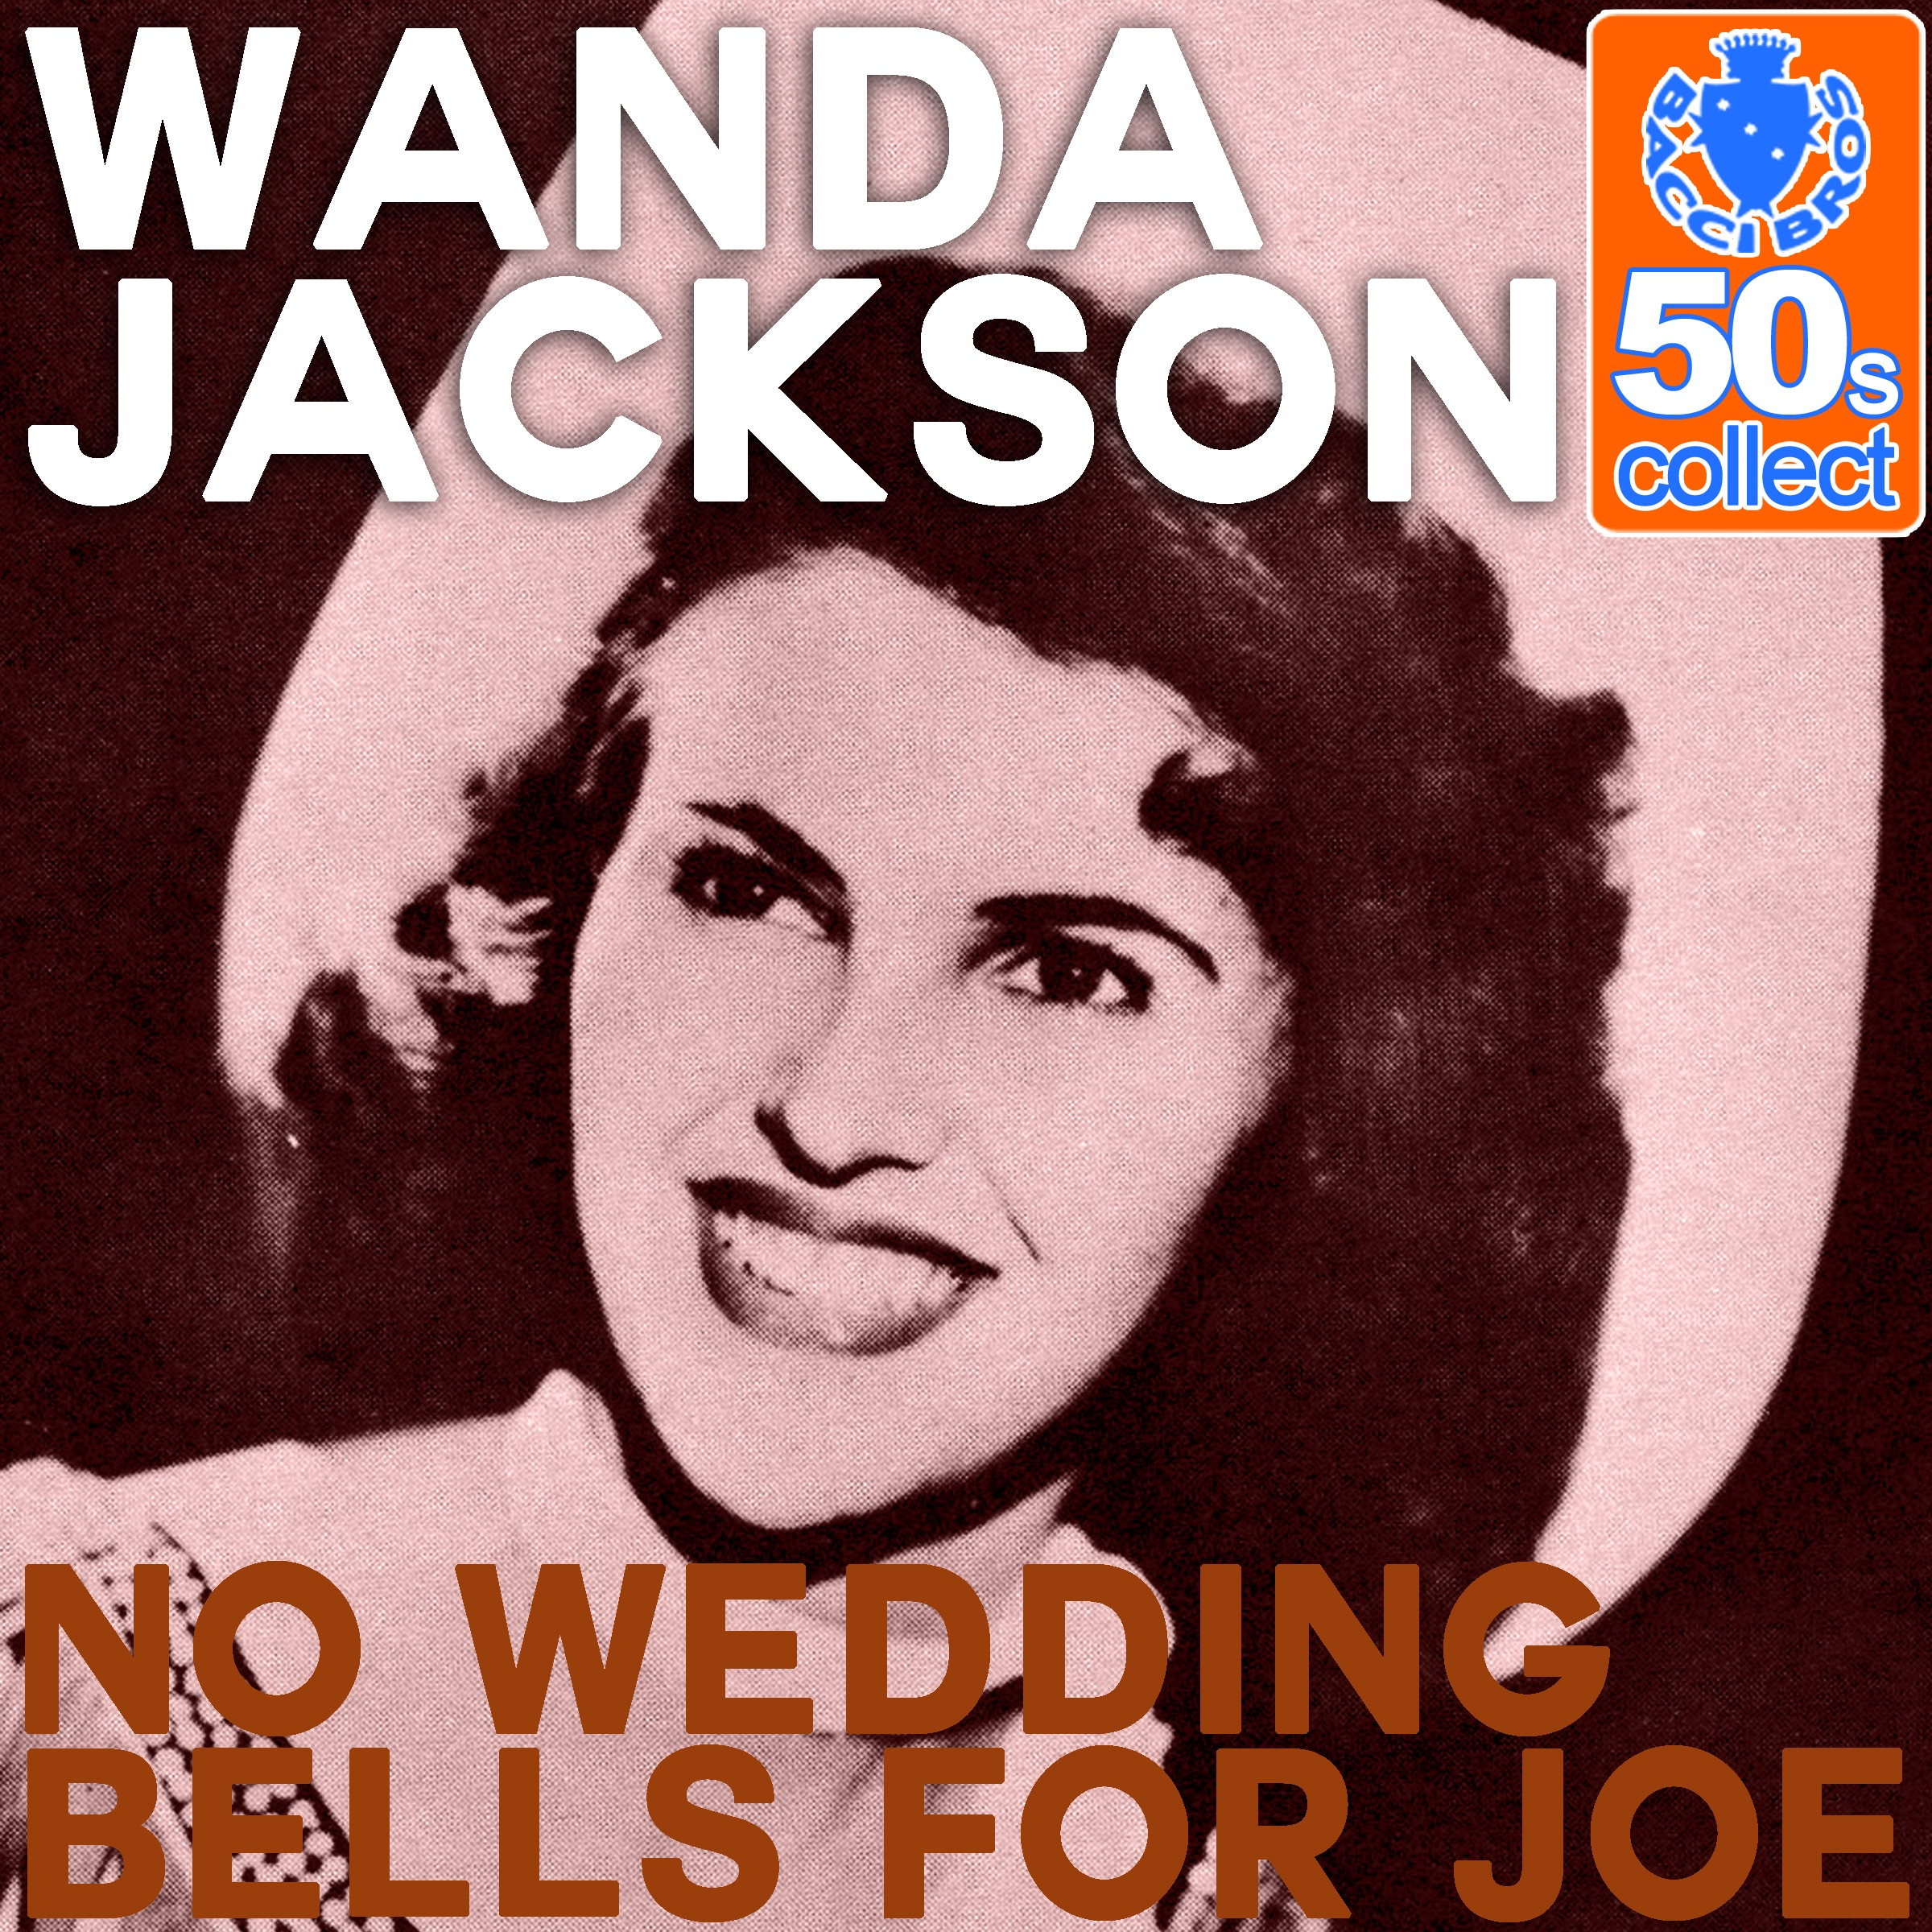 No Wedding Bells for Joe (Remastered) - Single